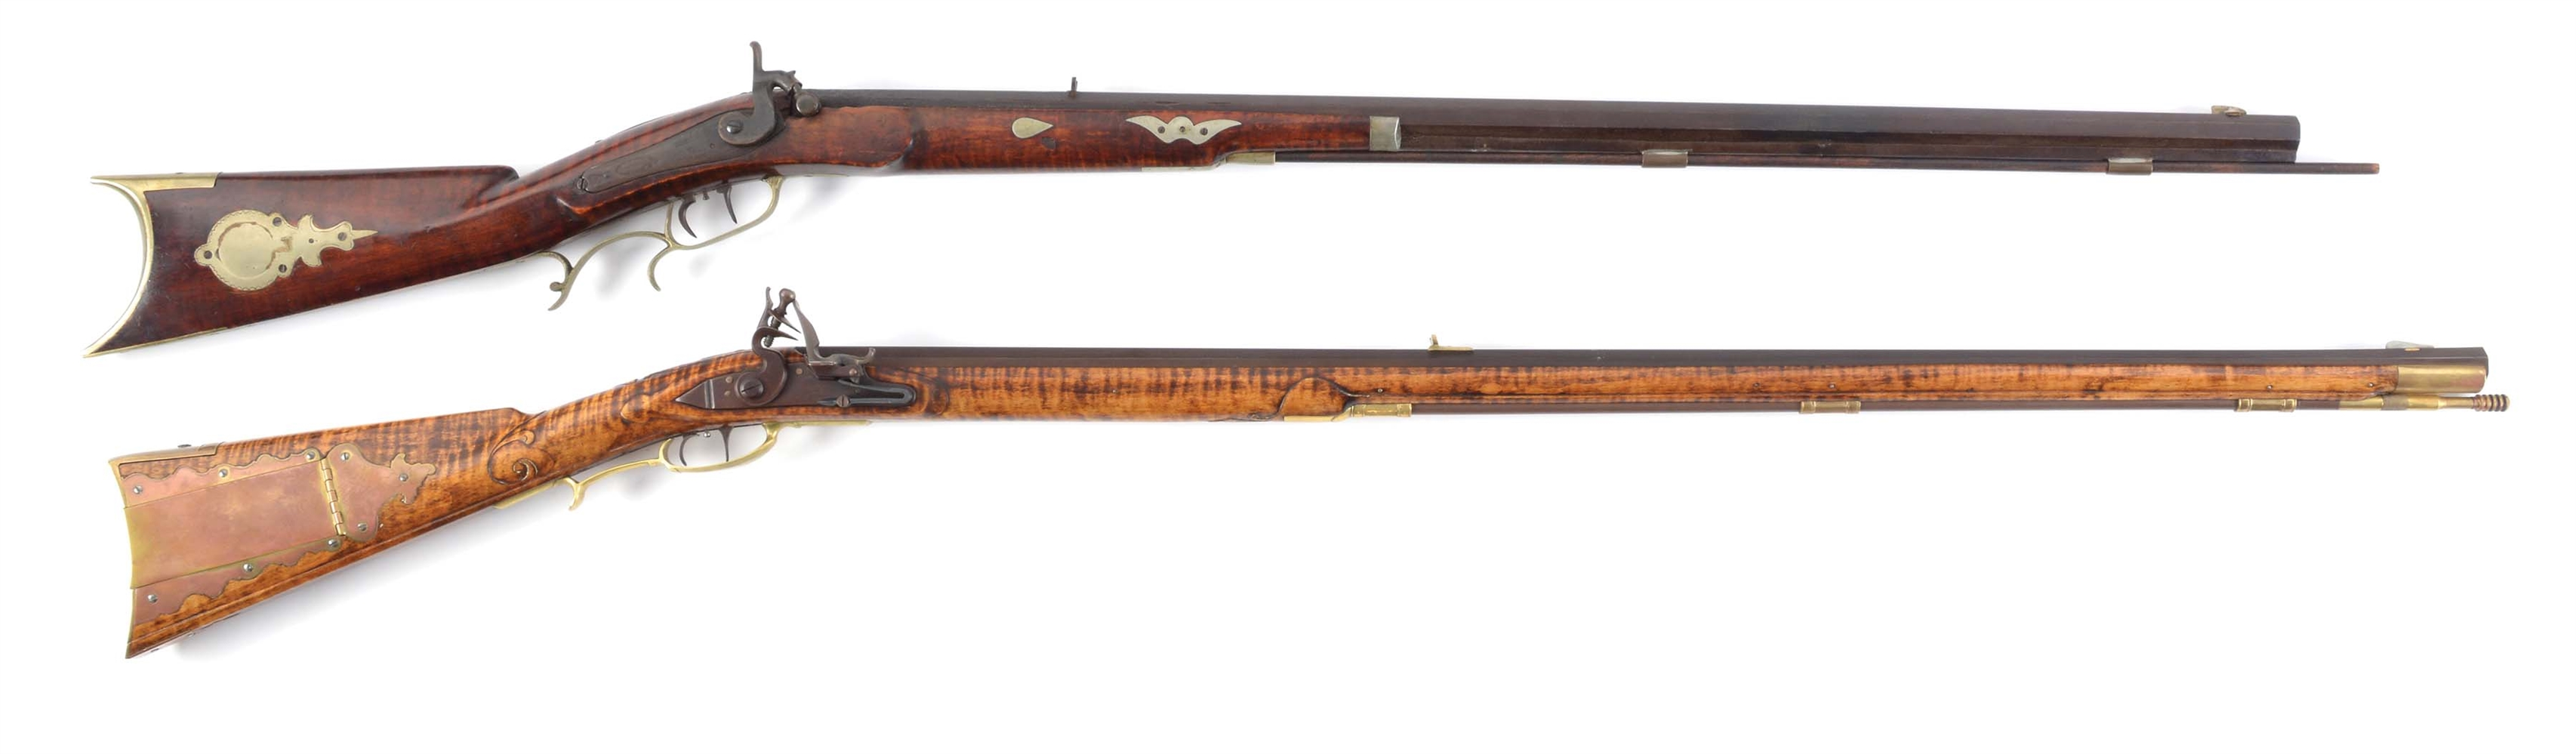 (A) LOT OF TWO: FISHER PERCUSSION .36 CALIBER LONG RIFLE AND CONTEMPORARY FLINTLOCK .50 CALIBER RIFLE.